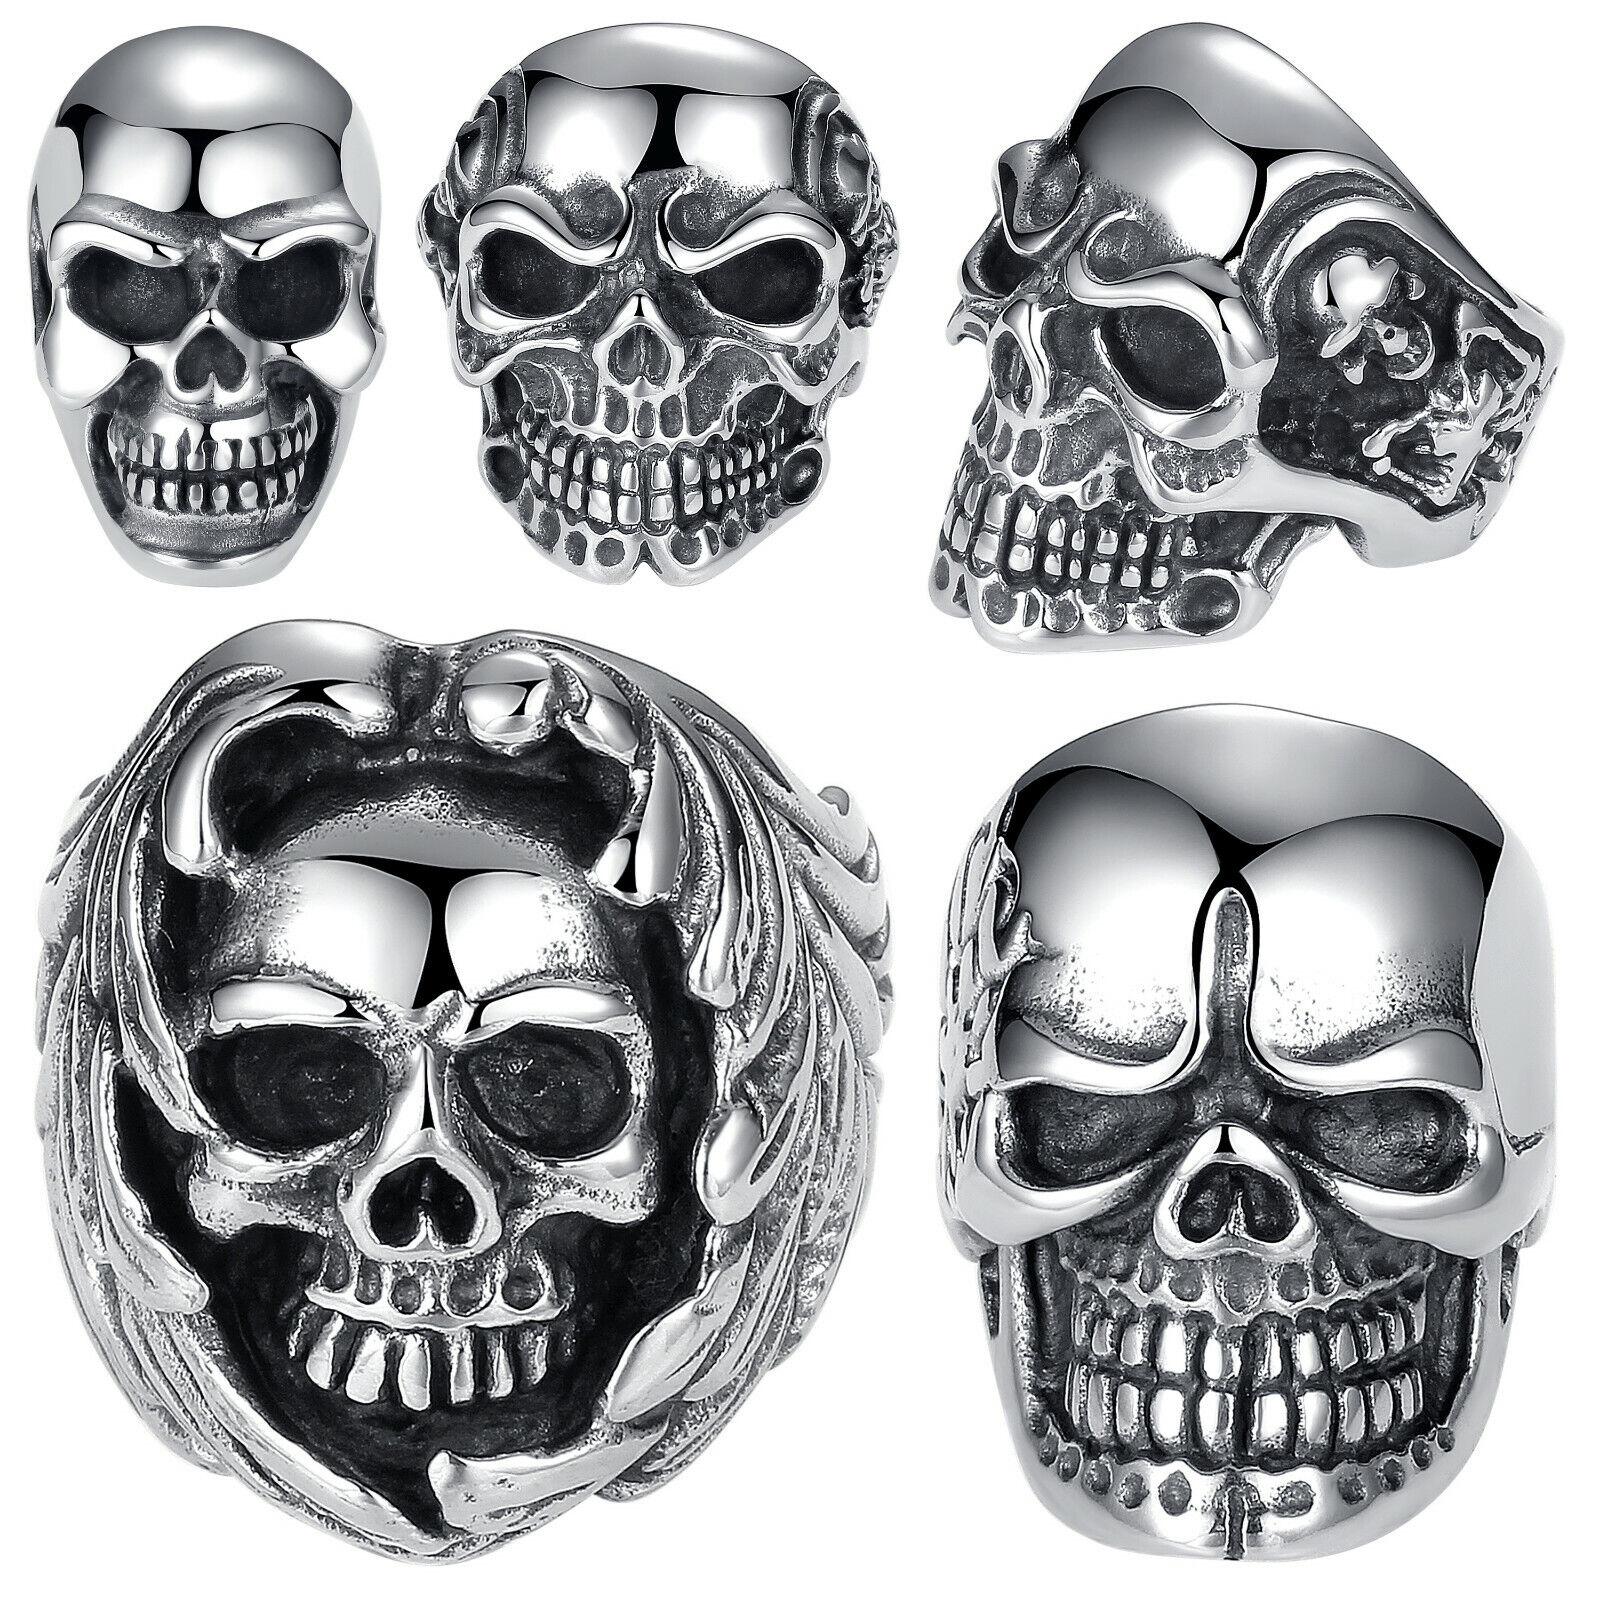 Men's Stainless Steel Gothic Halloween Biker Skull Ring (Size 7 – 12, US Seller) Jewelry & Watches